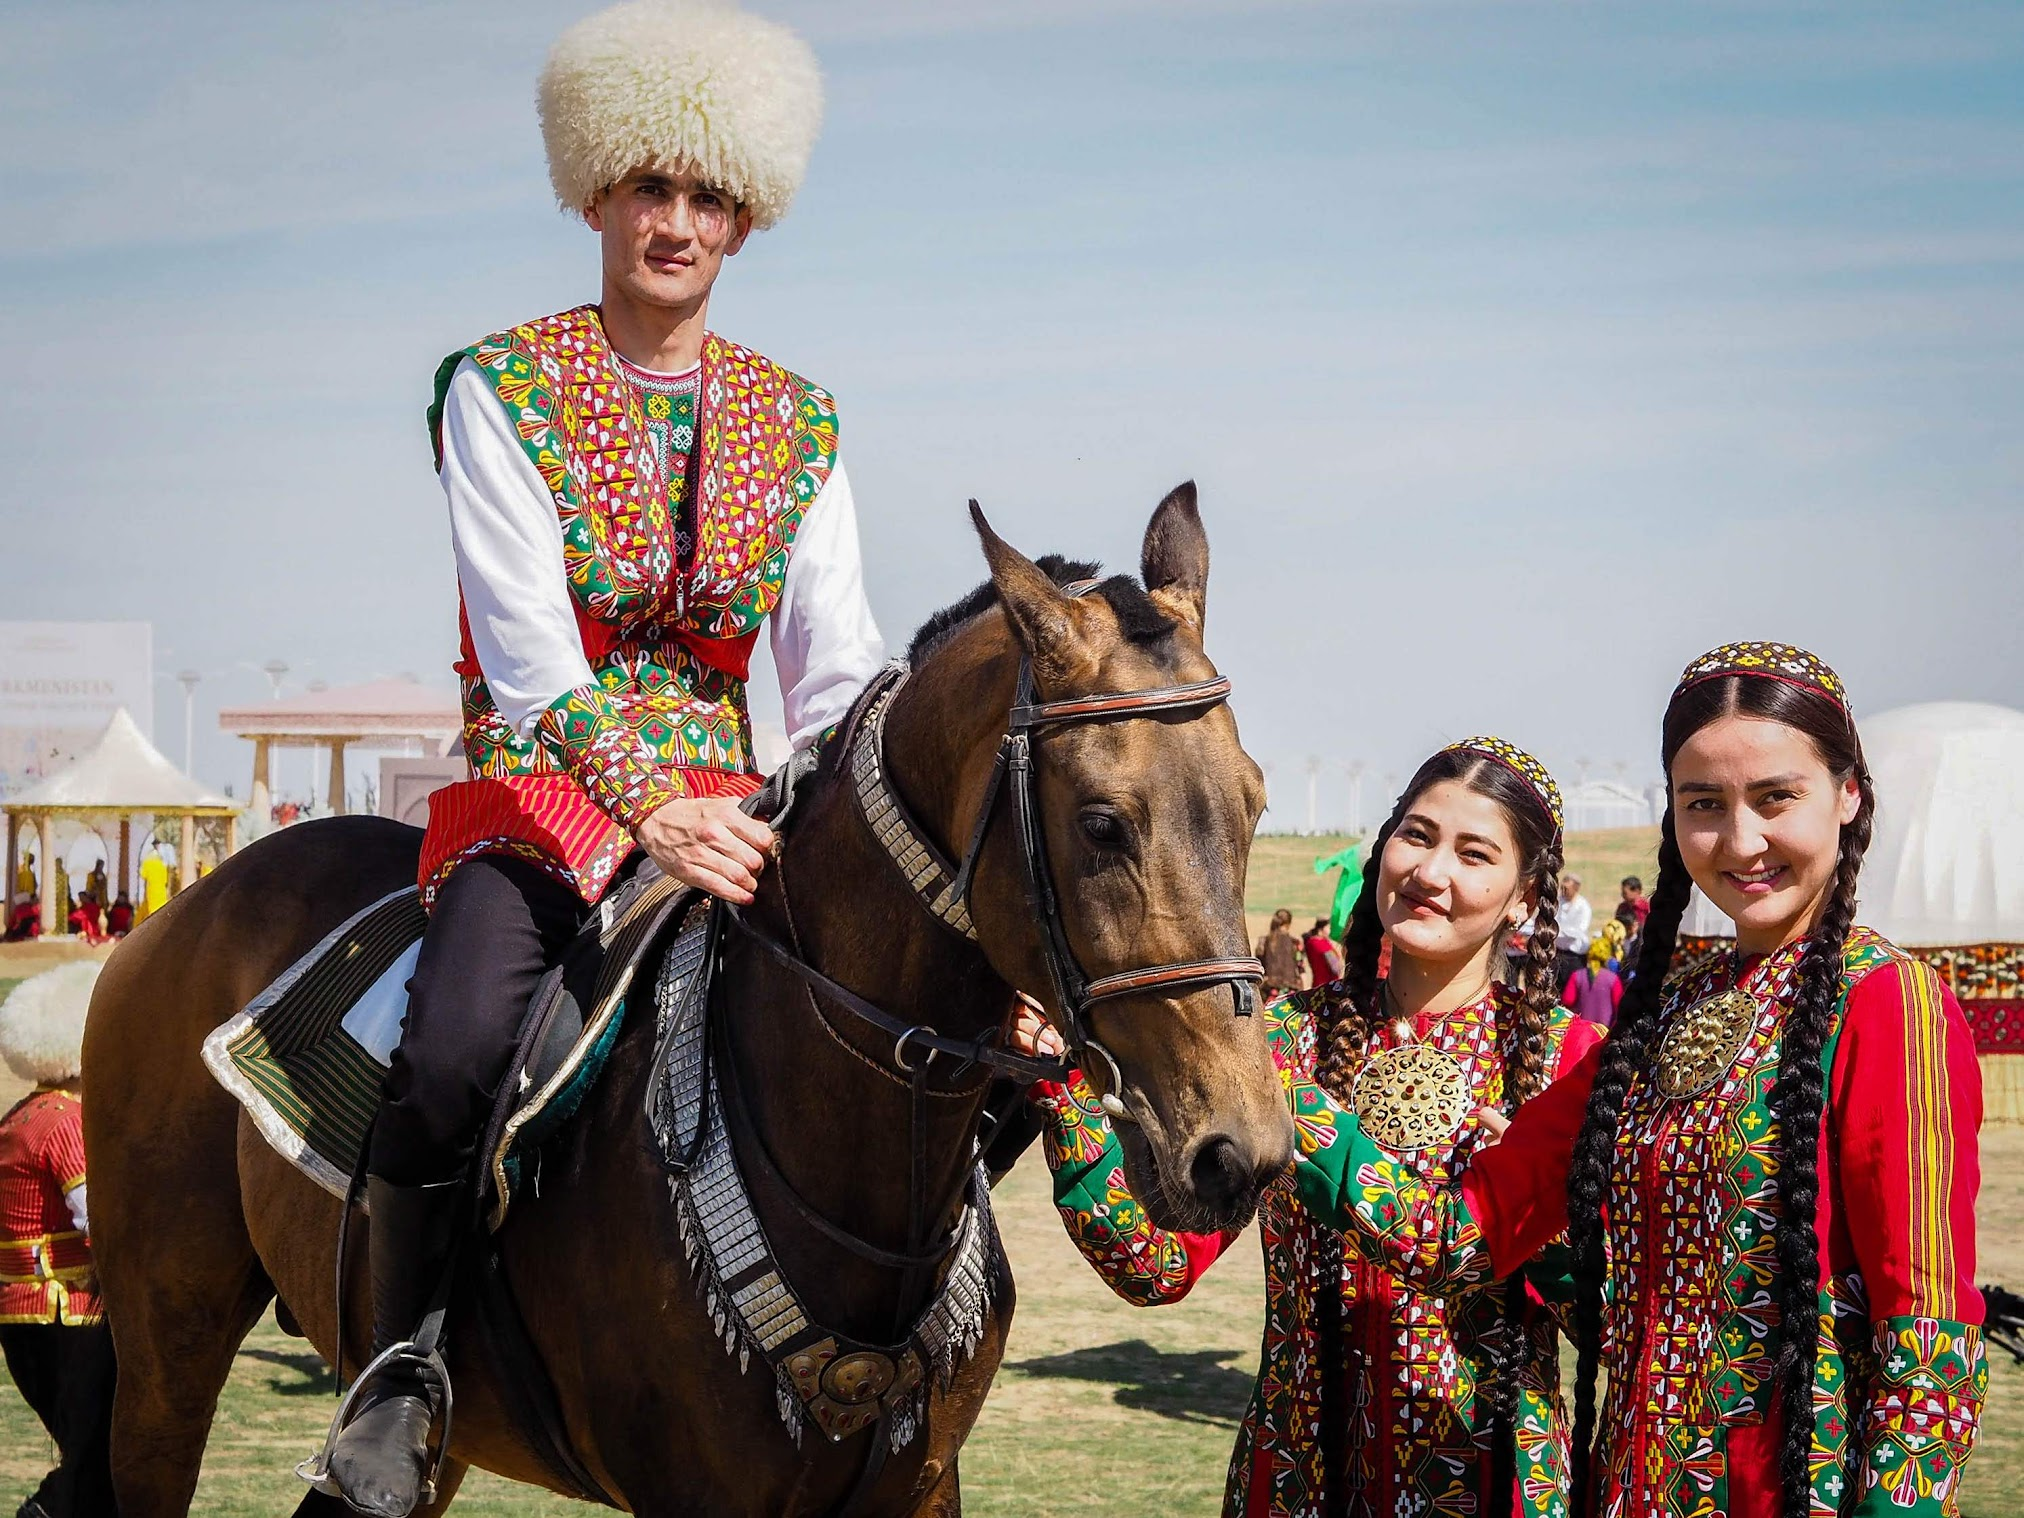 Akhal-Teke is a horse breed from Turkmenistan known for their speed and endurance, intelligence, and a distinctive metallic sheen. Turkmen are really proud of their horses.